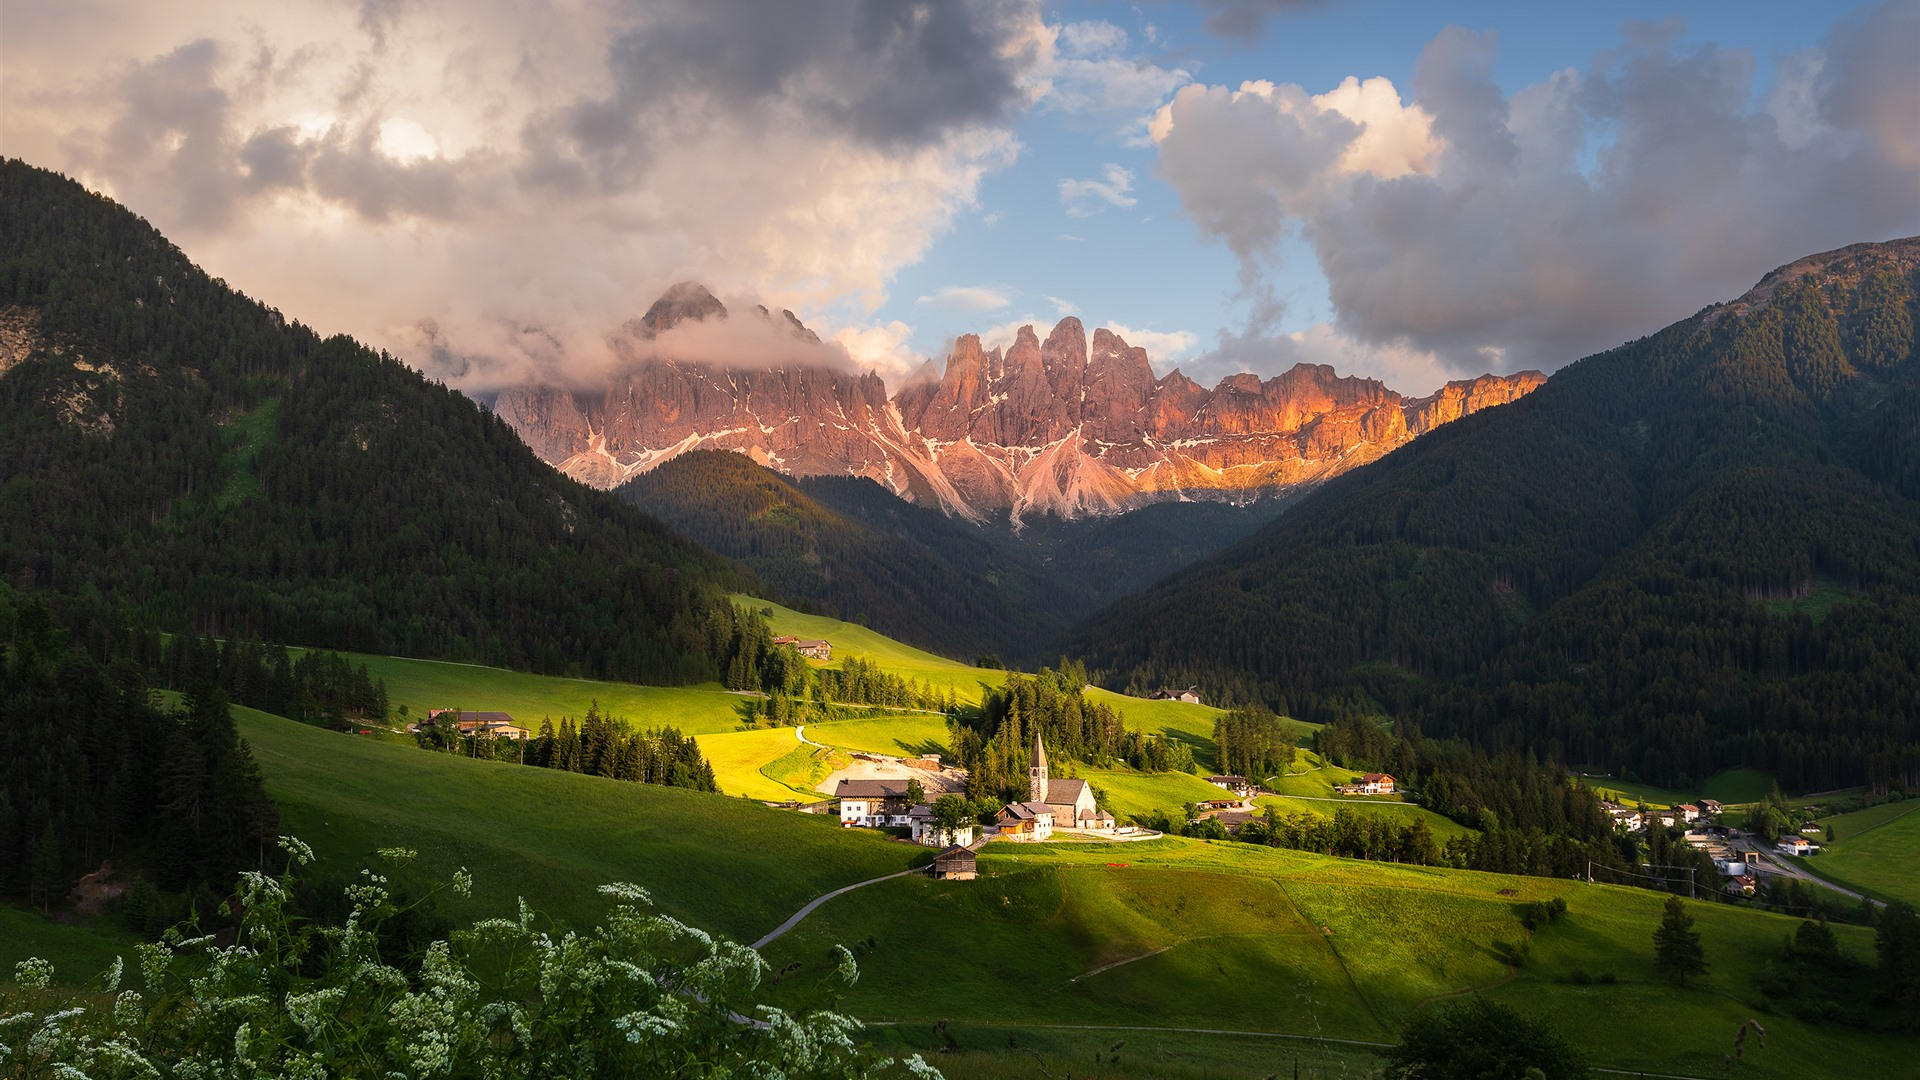 Dolomites Mountains Village Clouds Italy 750x1334